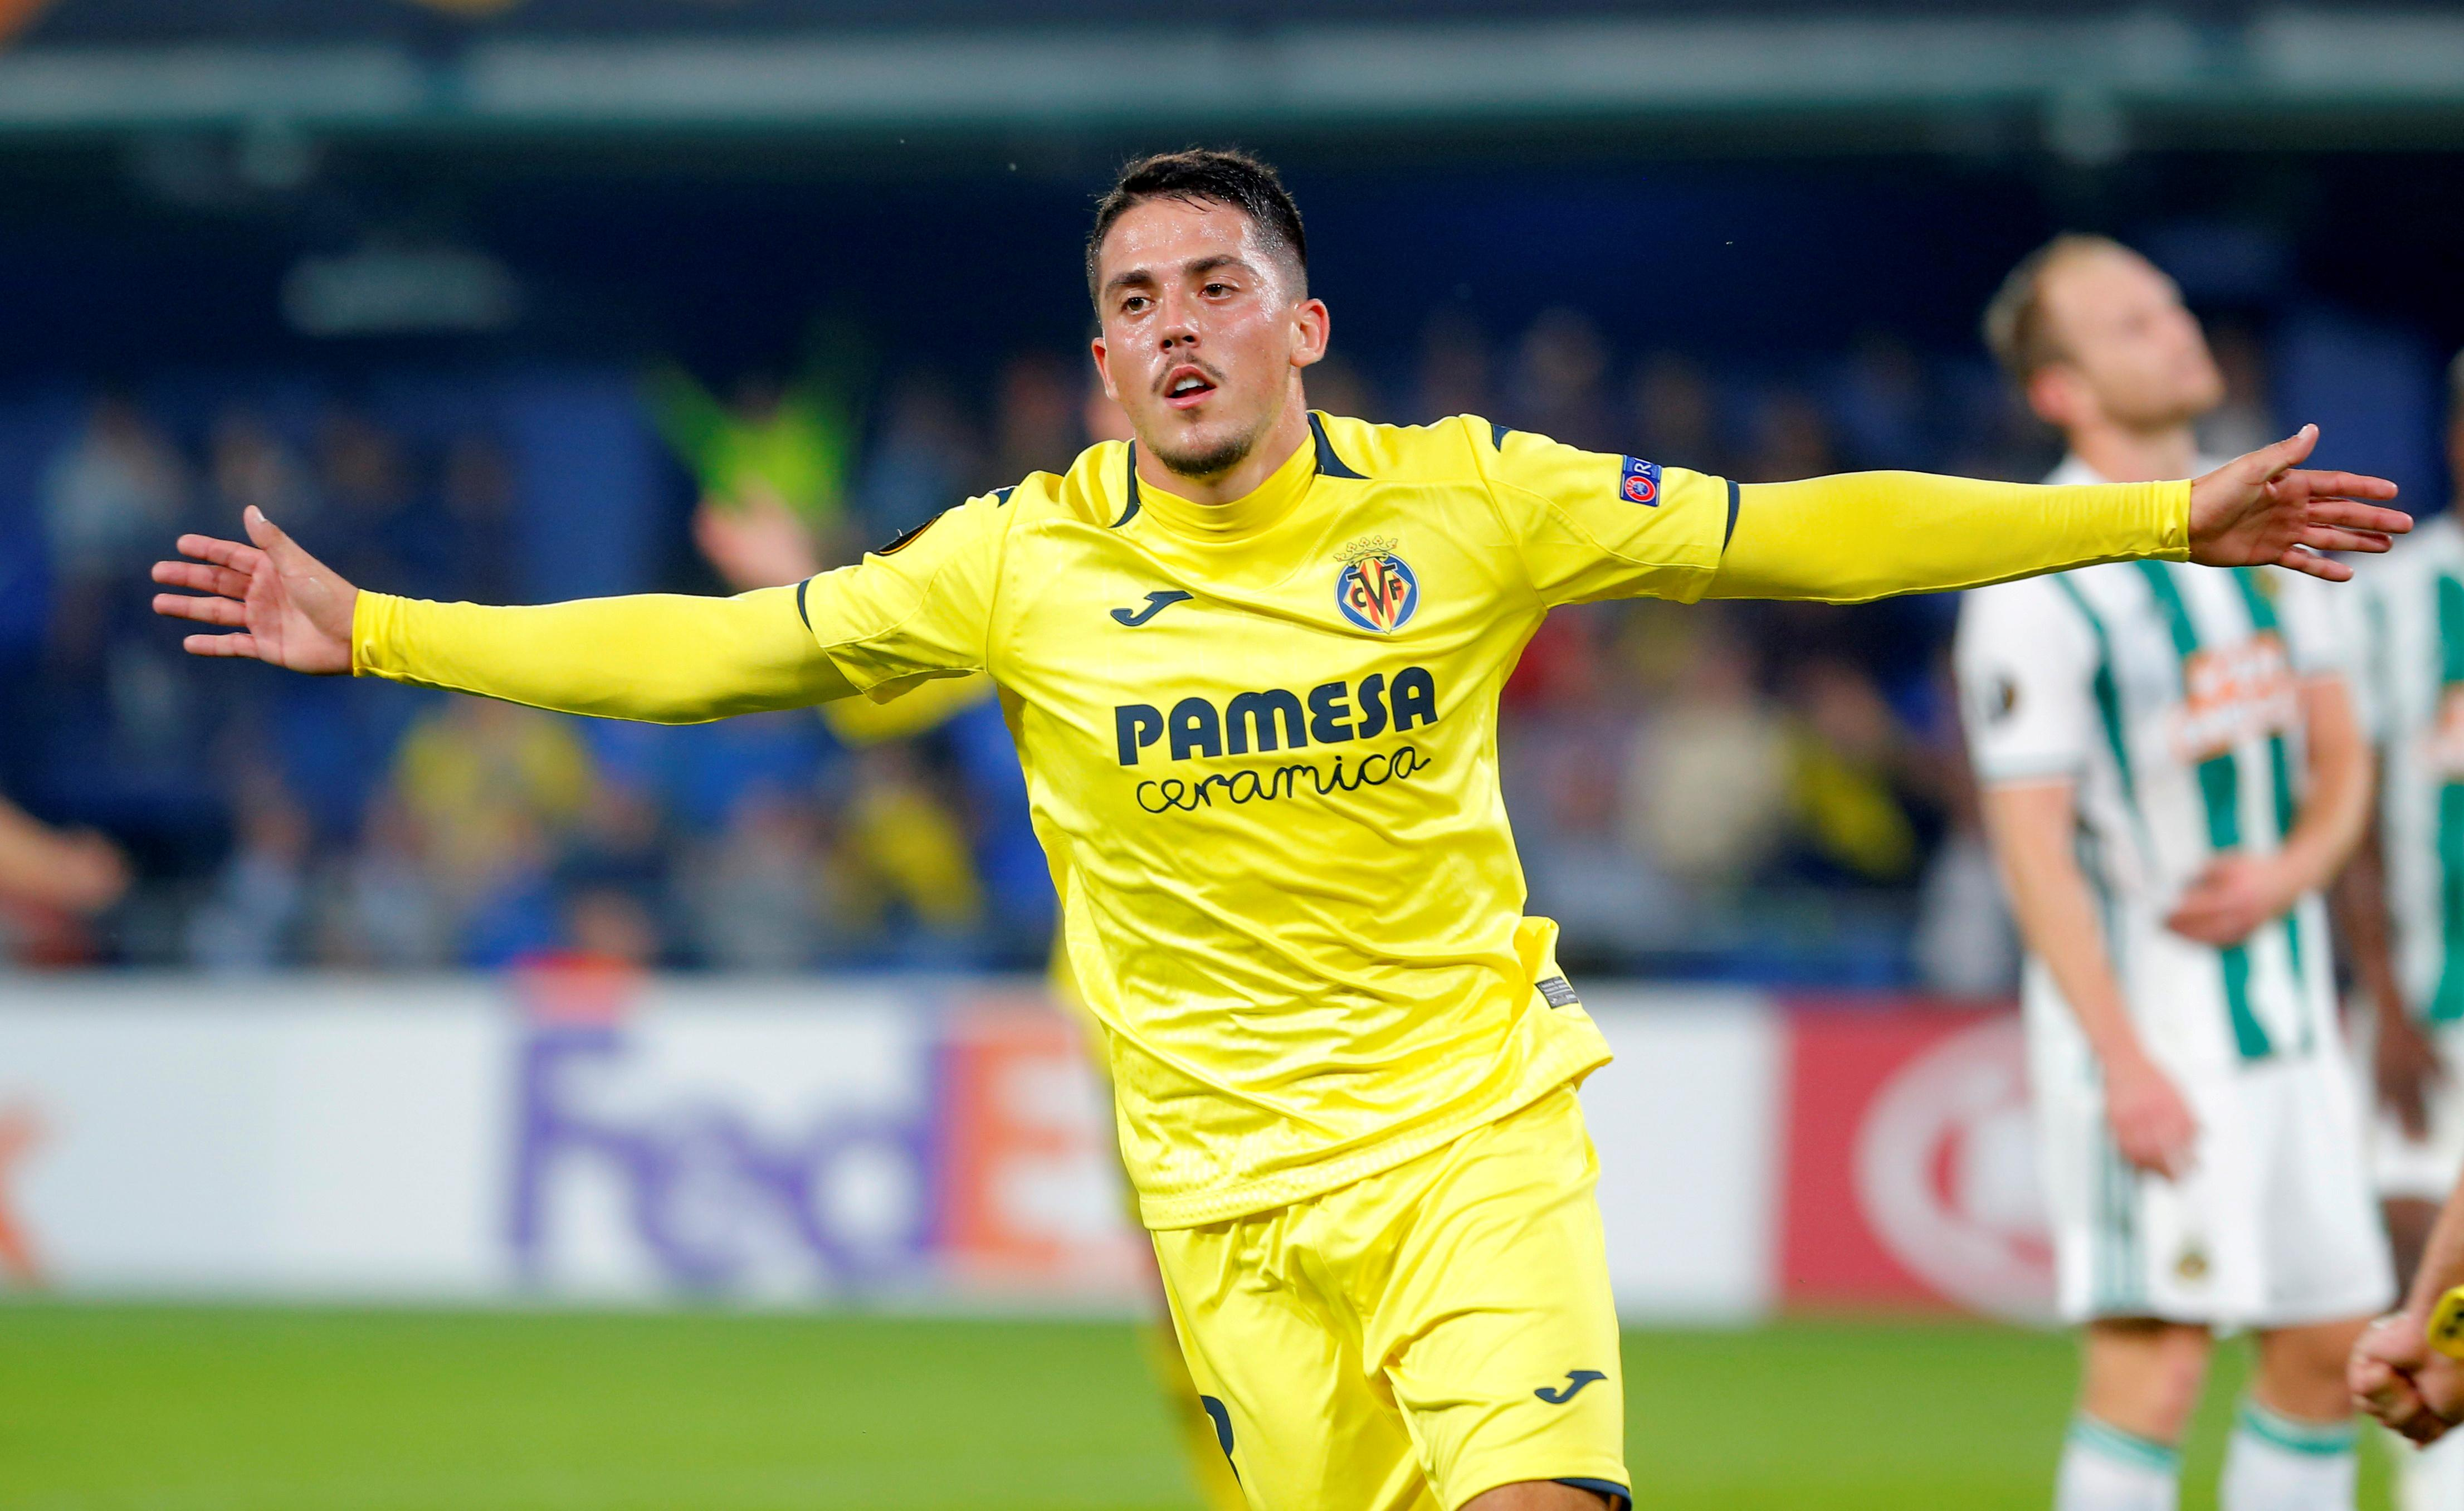 West Ham sign Spanish playmaker Fornals from Villarreal